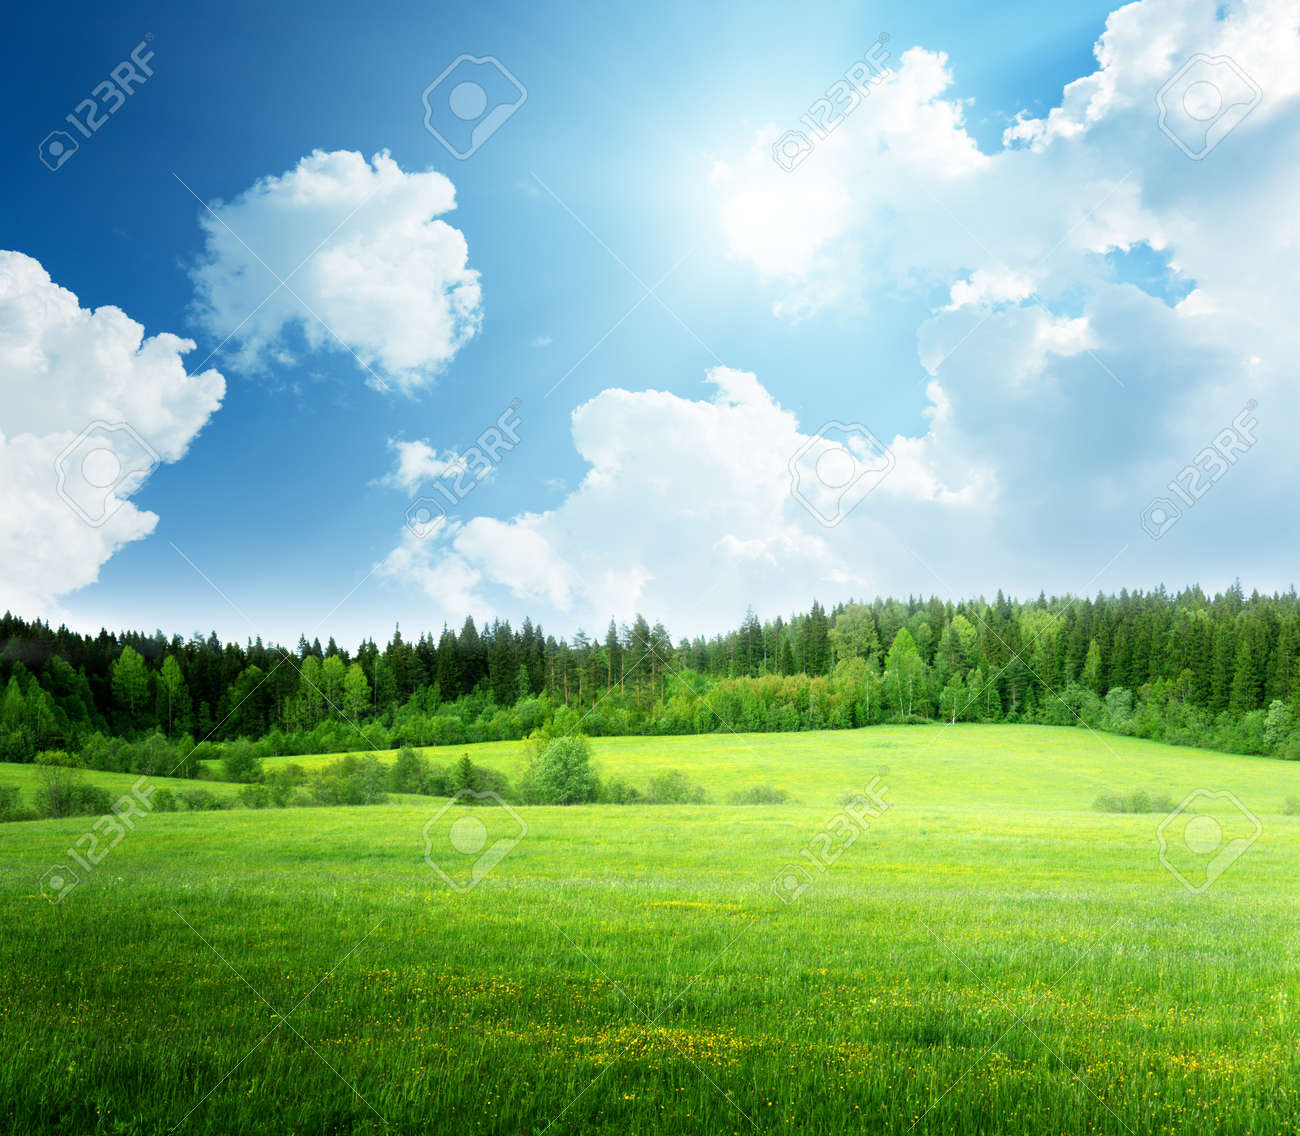 field of grass and perfect sky - 23800599